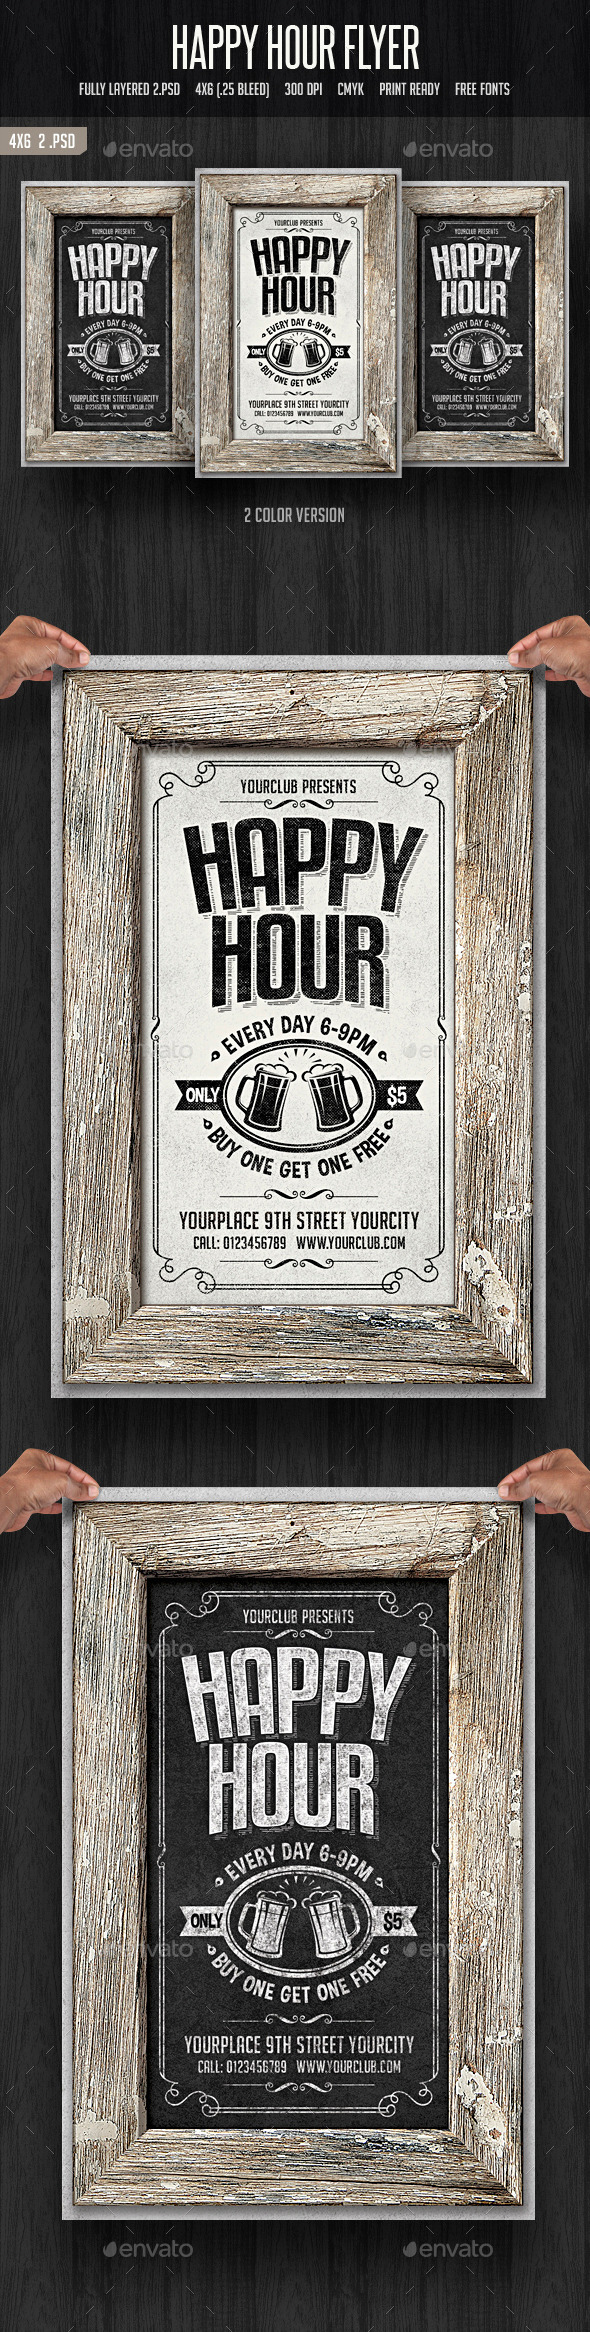 GraphicRiver Happy Hour Flyer 2 11795332